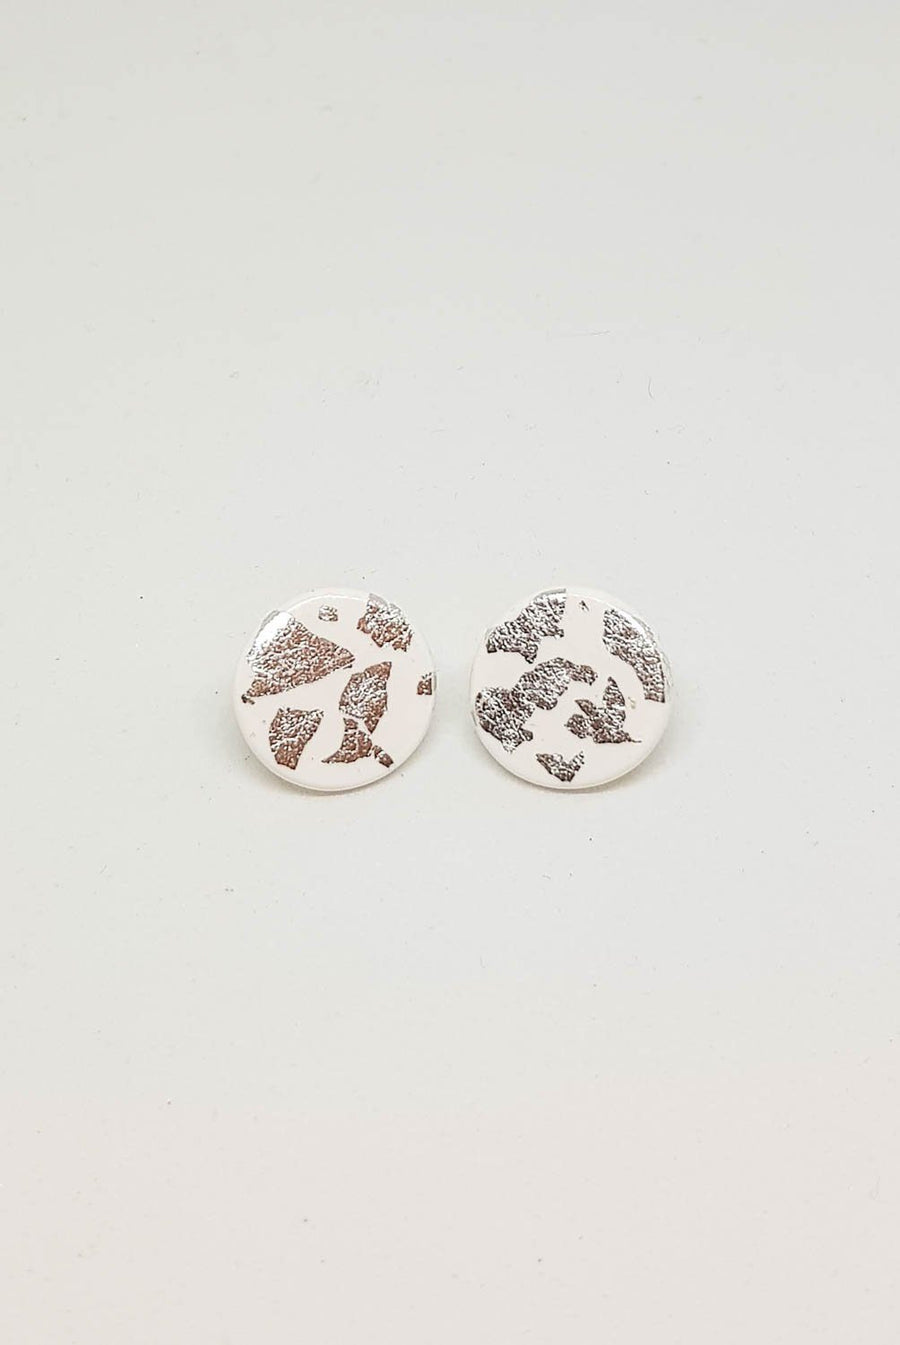 Studs | White With Silver 15 mm Earrings Gray.Label